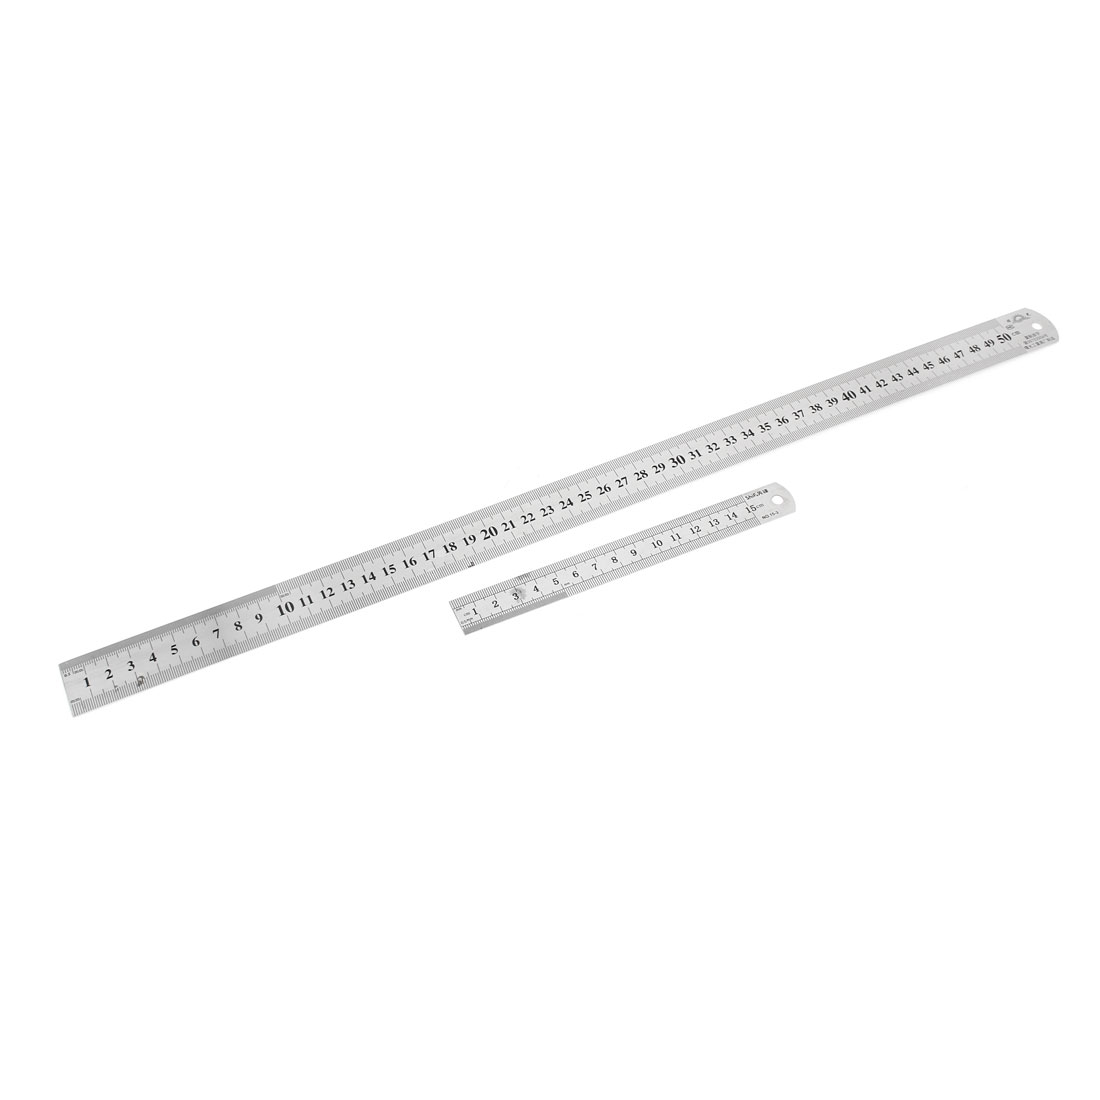 2 in 1 15cm 50cm Double Sides Students Metric Straight Ruler Silver Tone